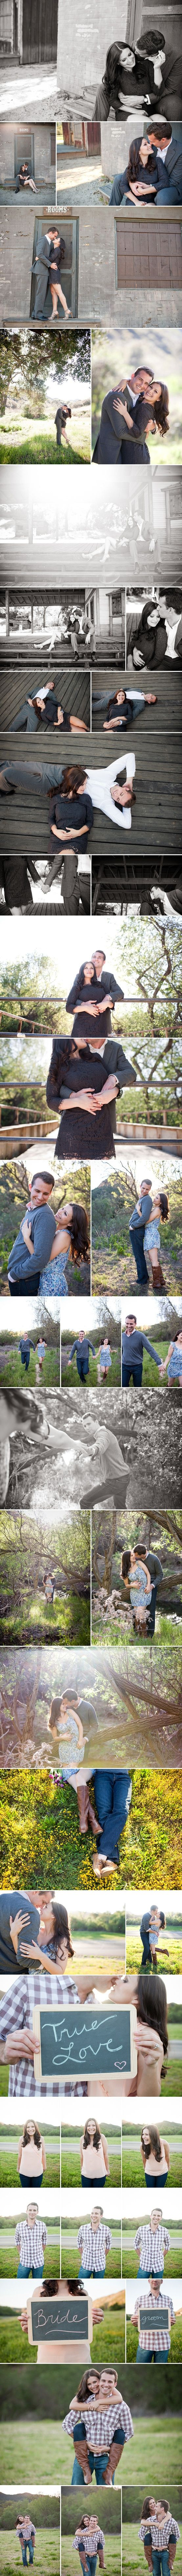 engagement+shoot...really+like+the+variety+of+perspectives...+lovely - Click image to find more Photography Pinterest pins